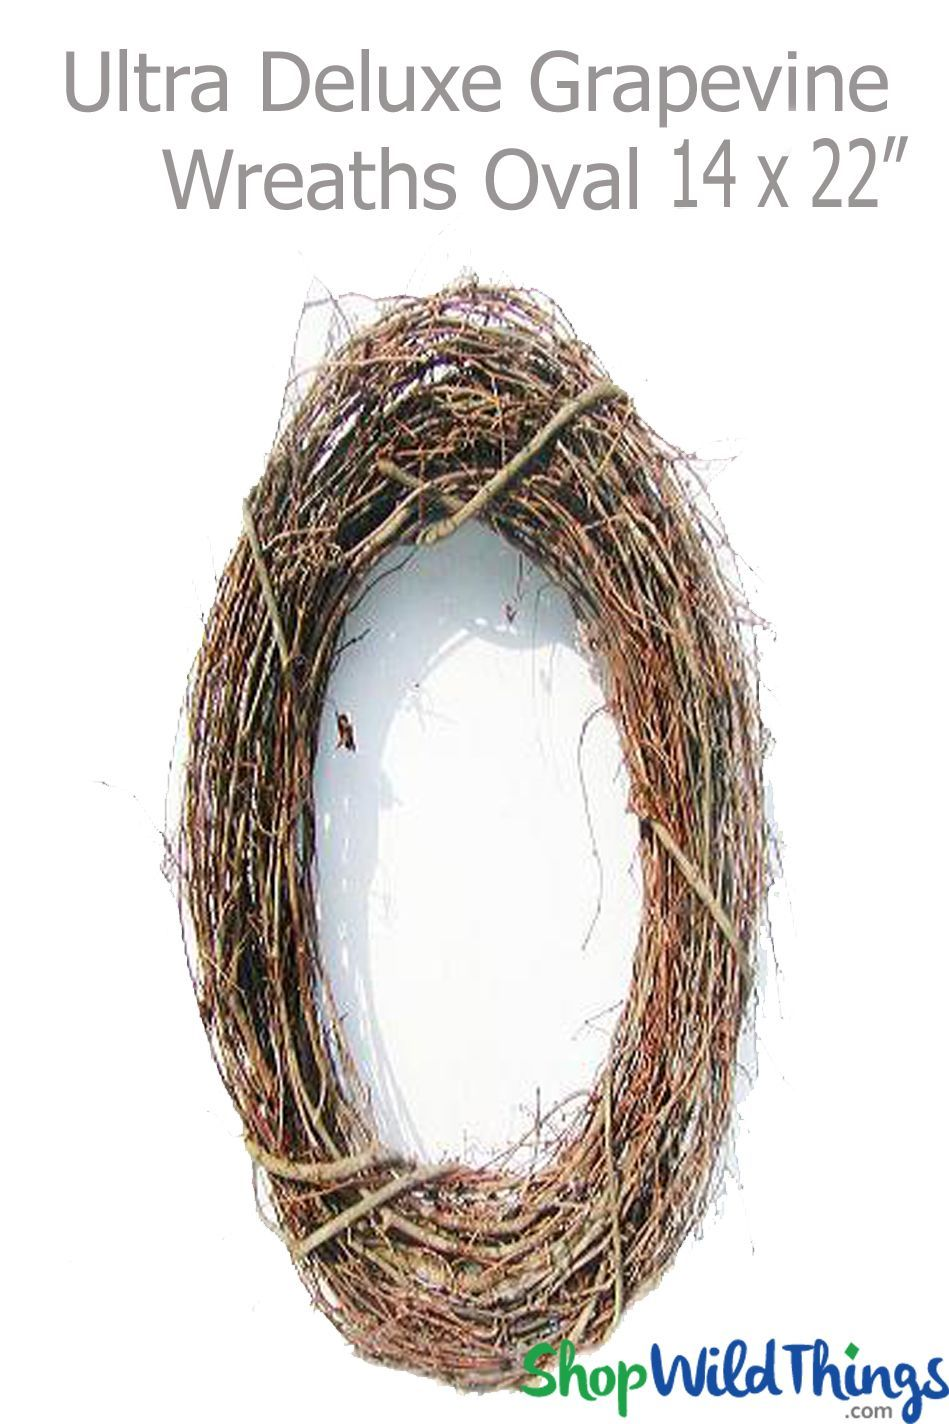 Grapevine Wreath 14 x 22 Oval  Premium UltraDeluxe hang  drape with floralcrystals  Winter spring summer or fall a Grapevine Wreath is a fun and easy item to decorate and...